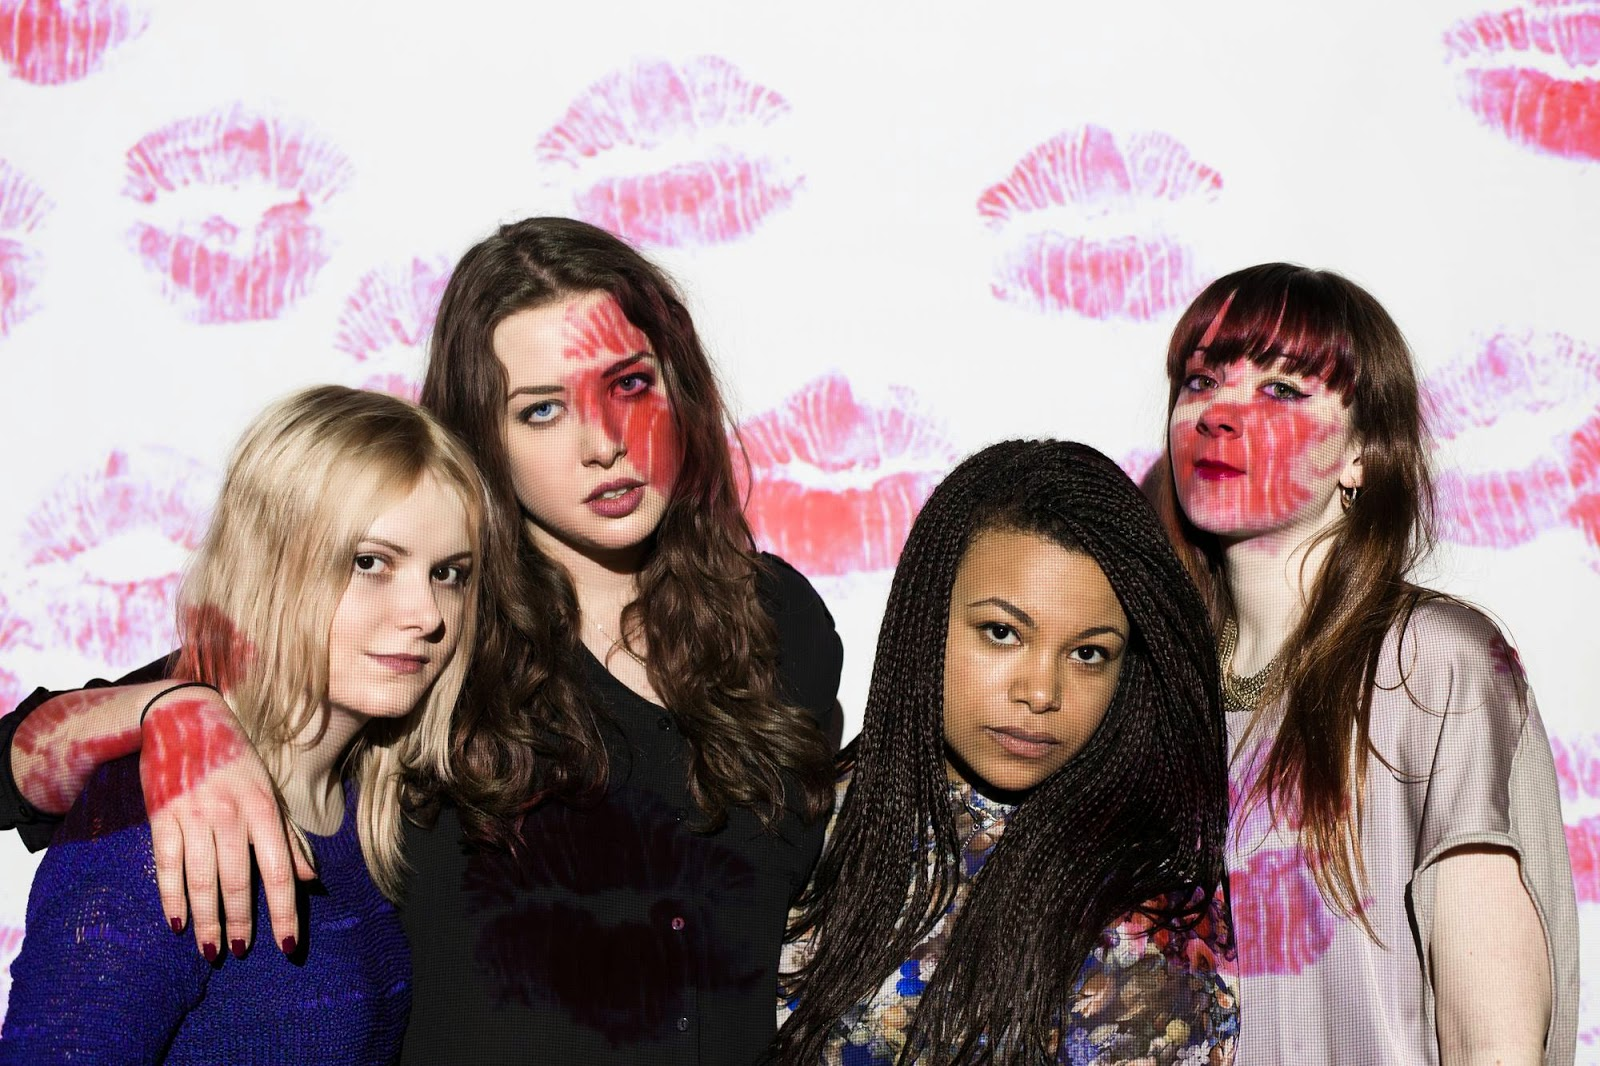 Rouge Girls debut E.P. Edge of the Bed